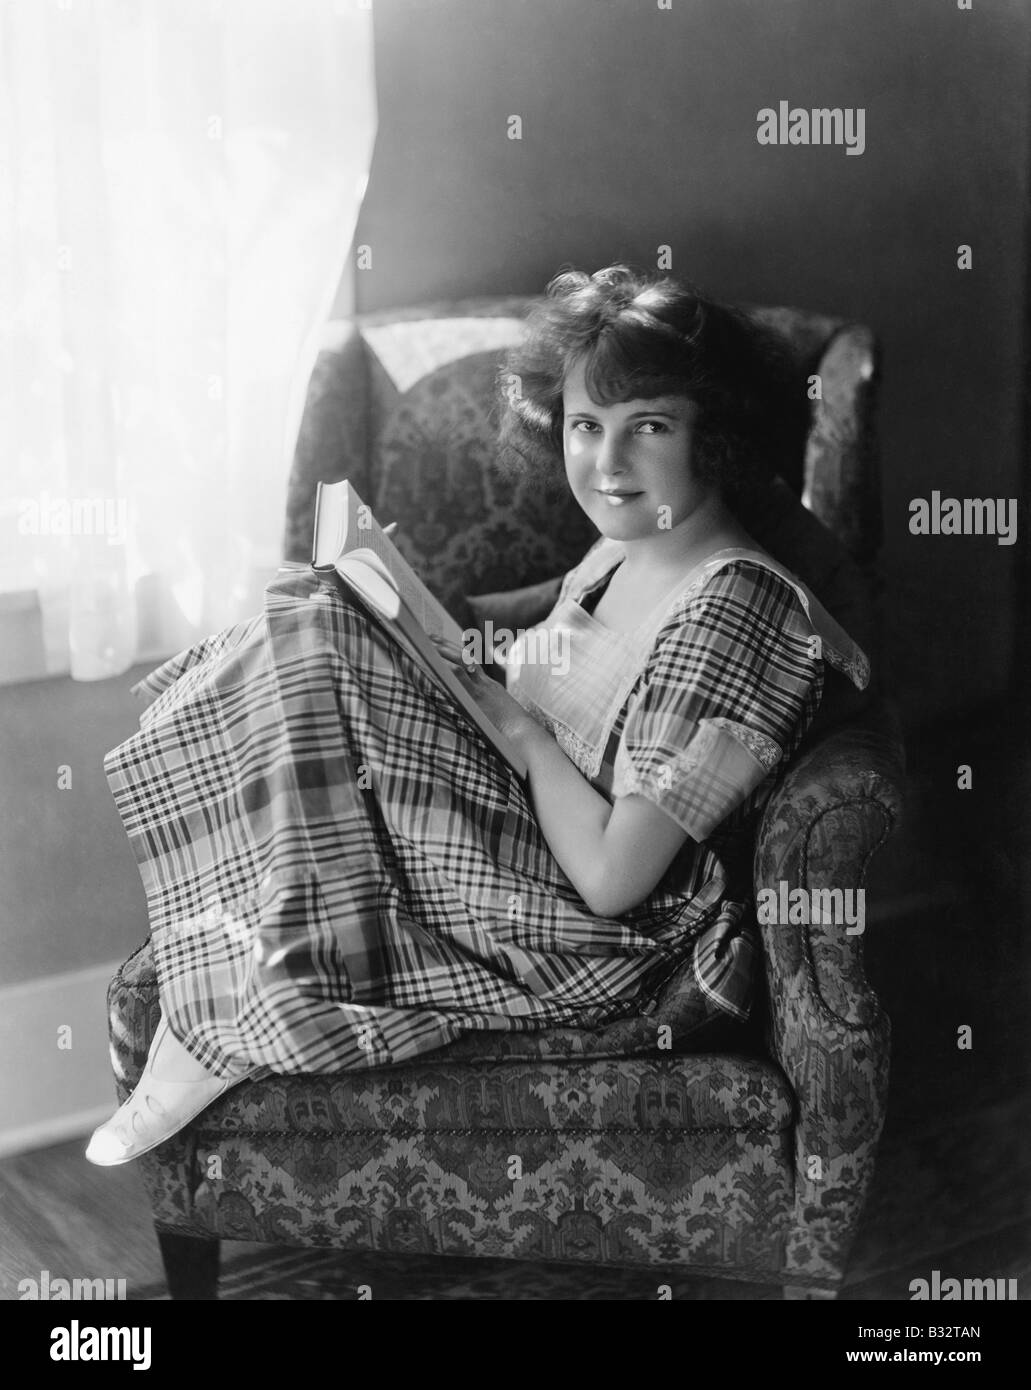 Portrait of a young woman sitting in an armchair and holding a book - Stock Image